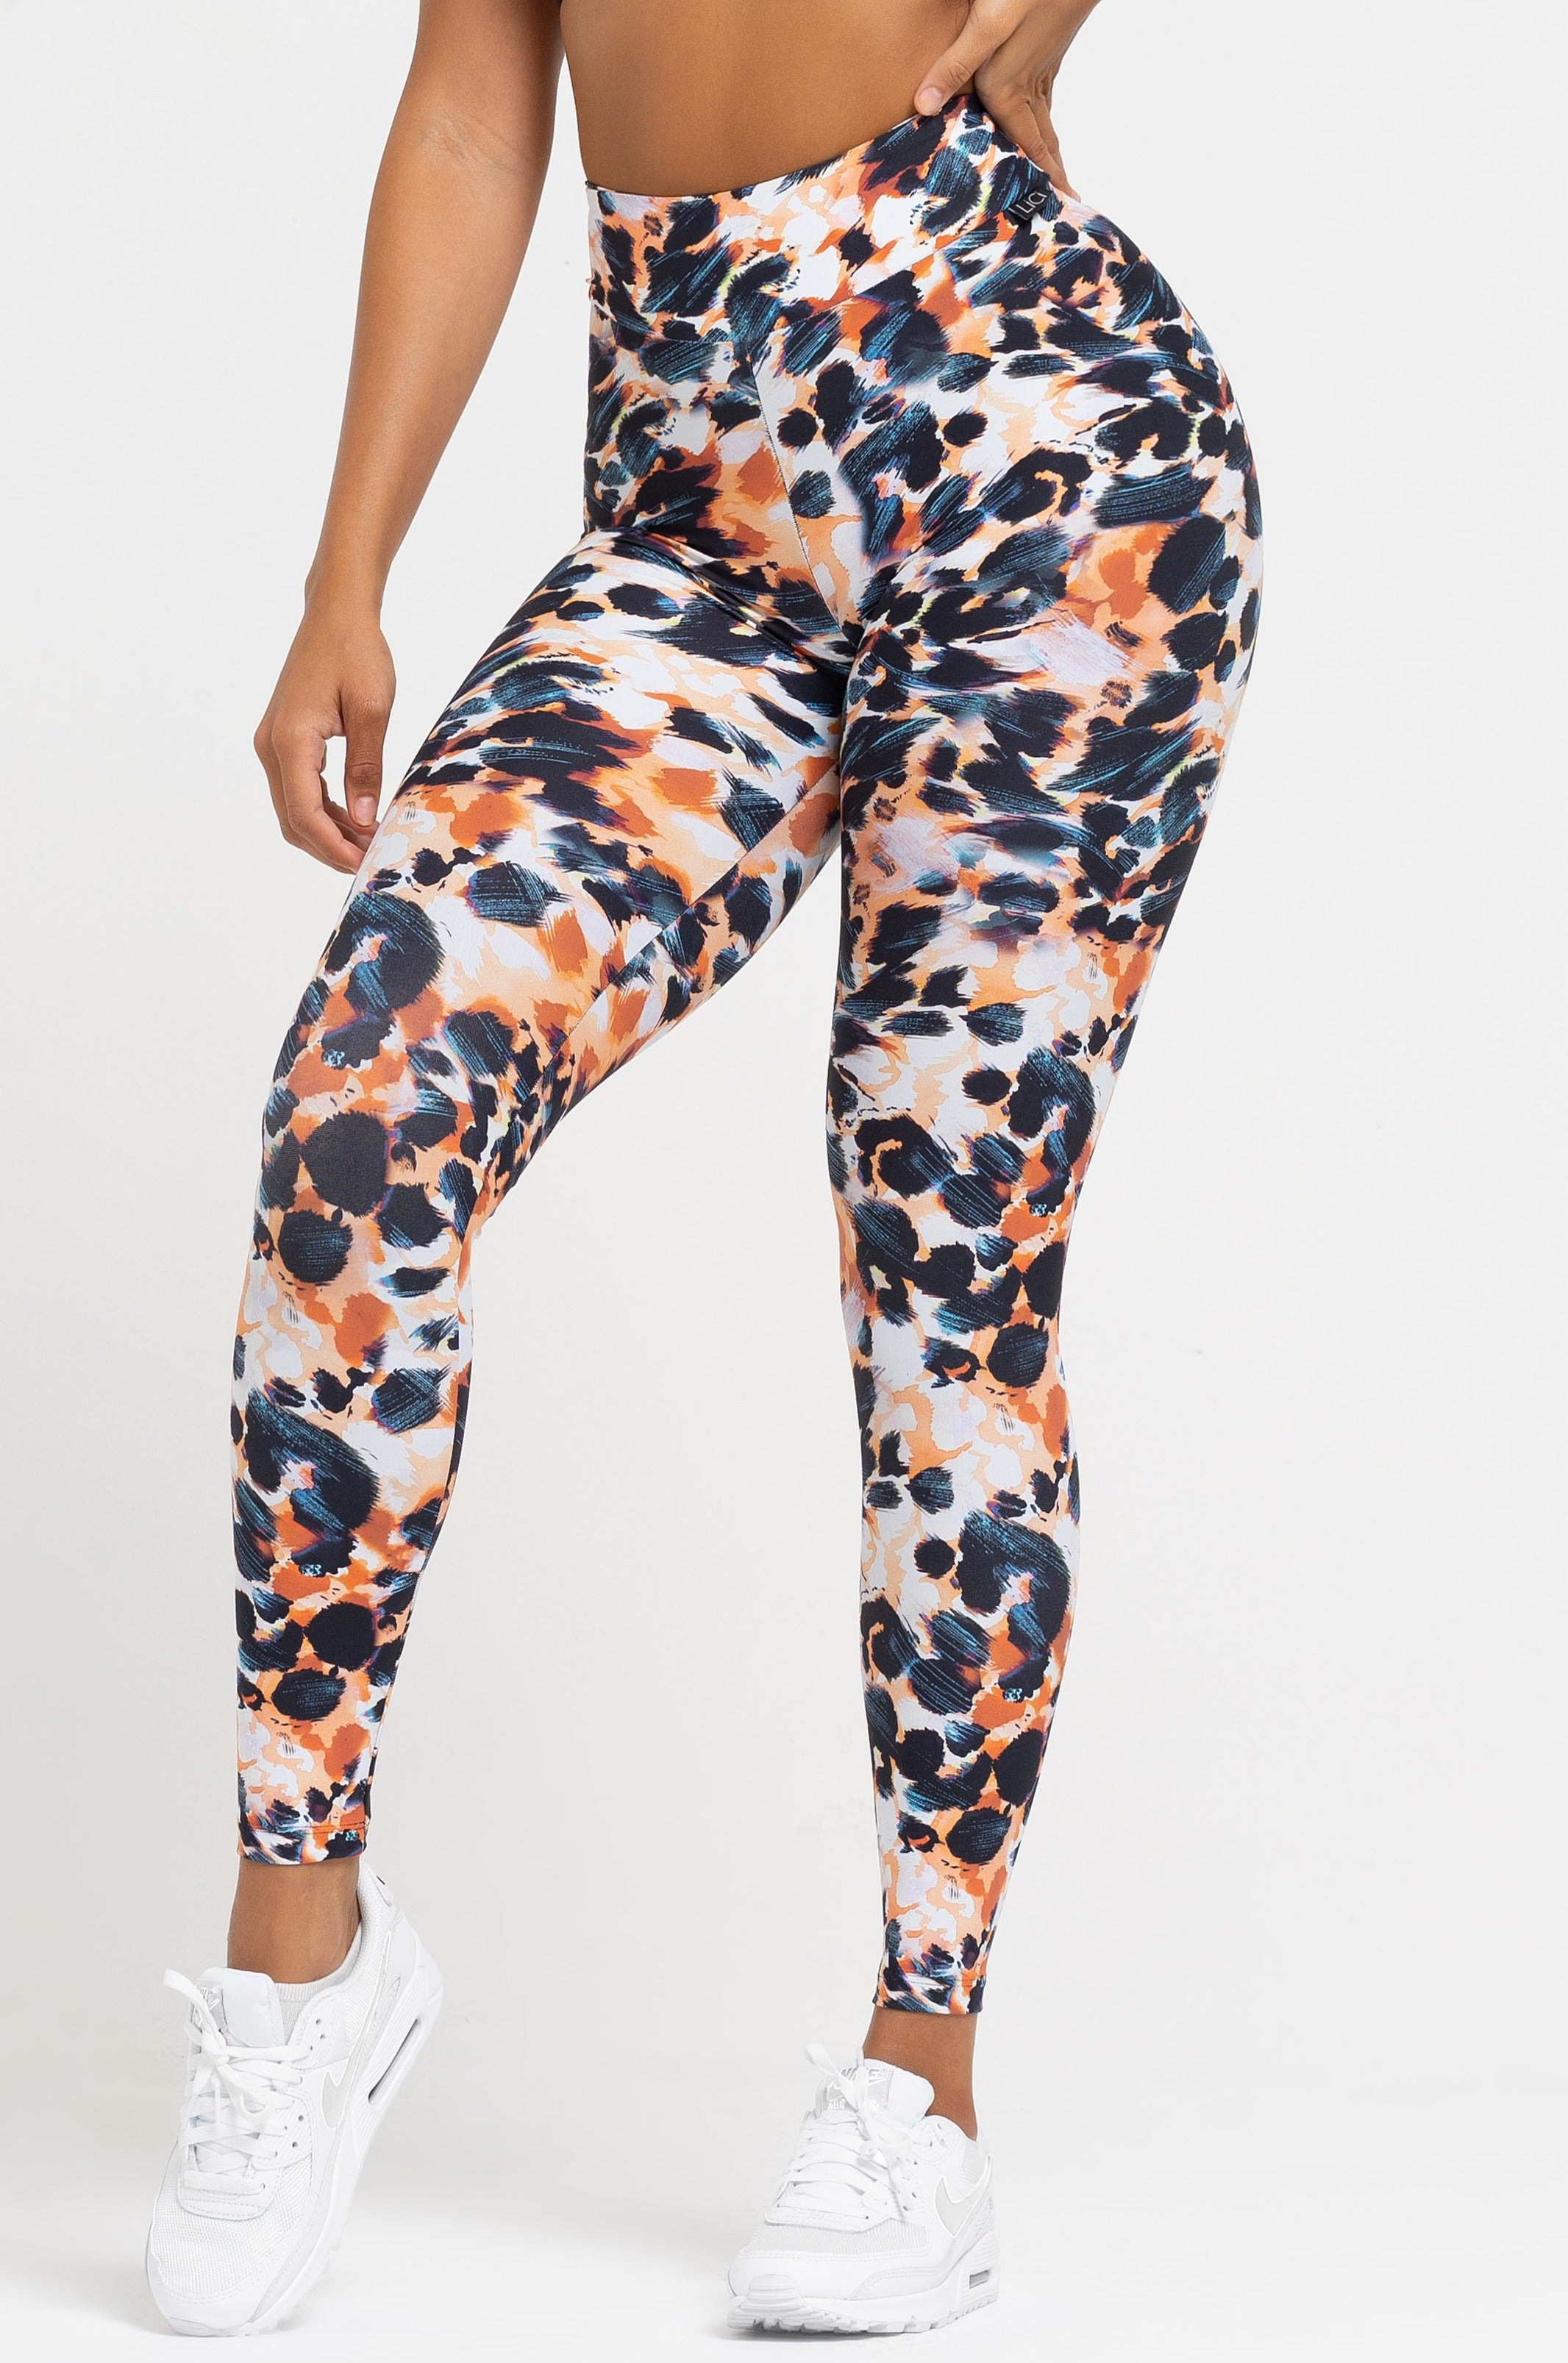 Wild Thing High Waist Scrunch Leggings